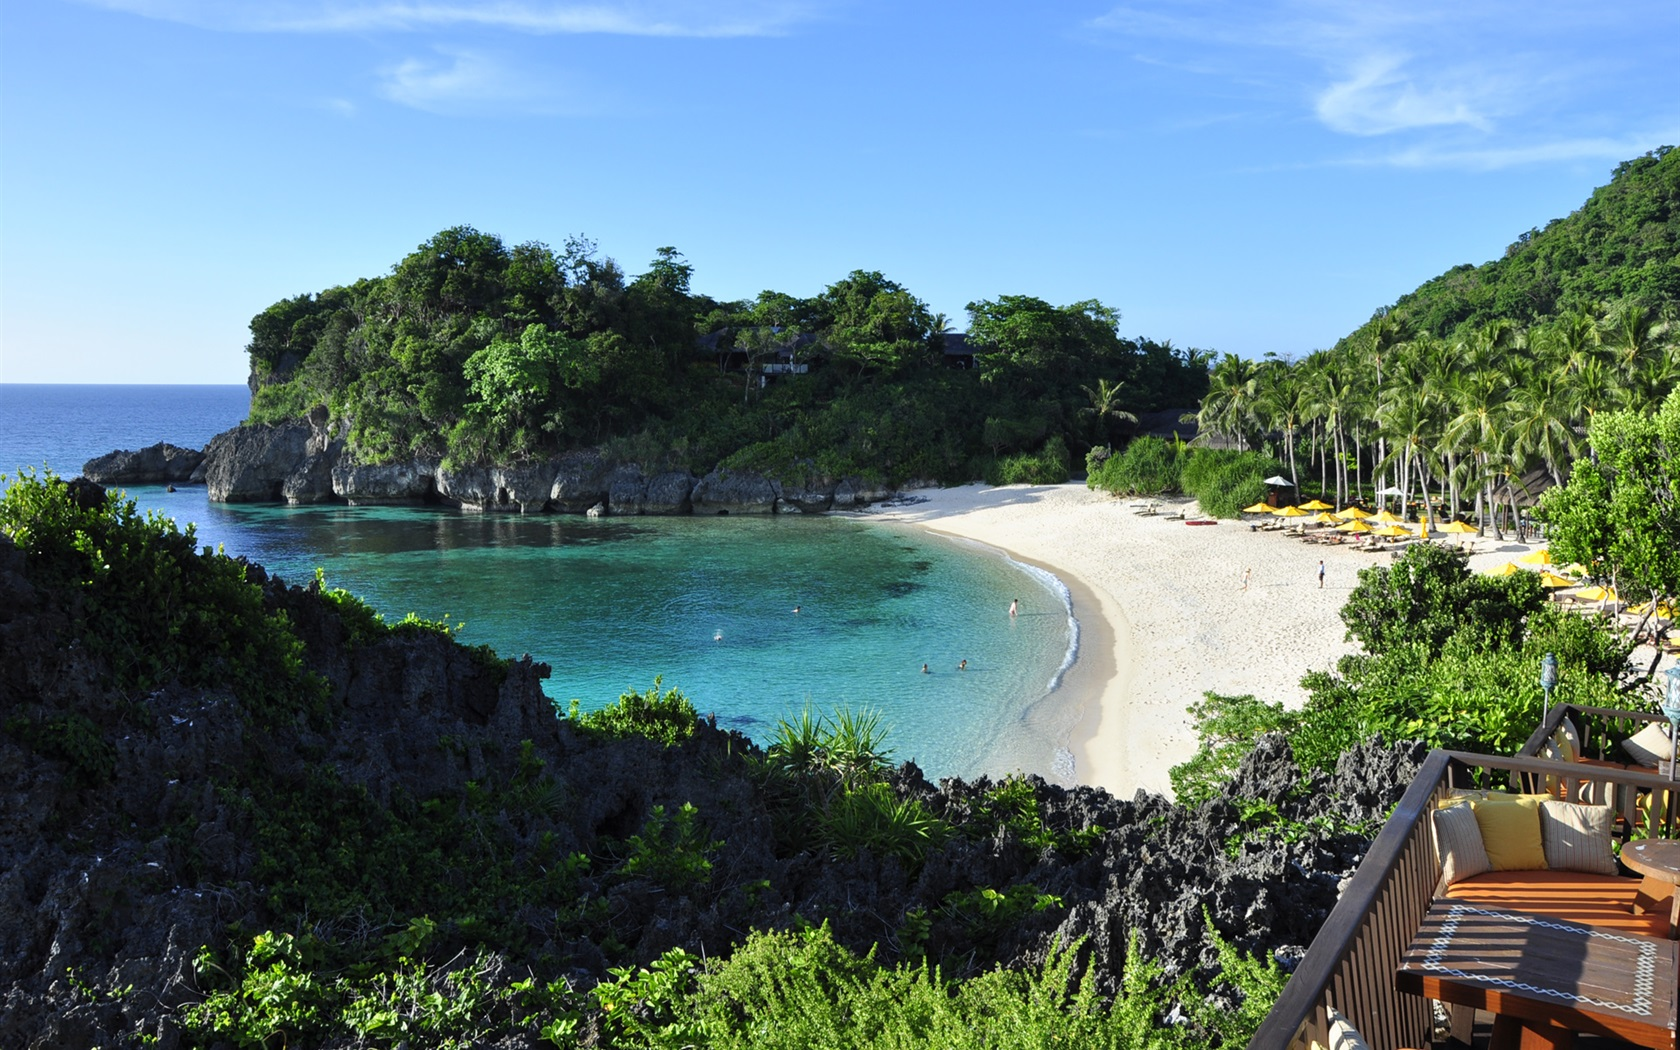 boracay wallpaper,body of water,natural landscape,nature,coast,nature reserve